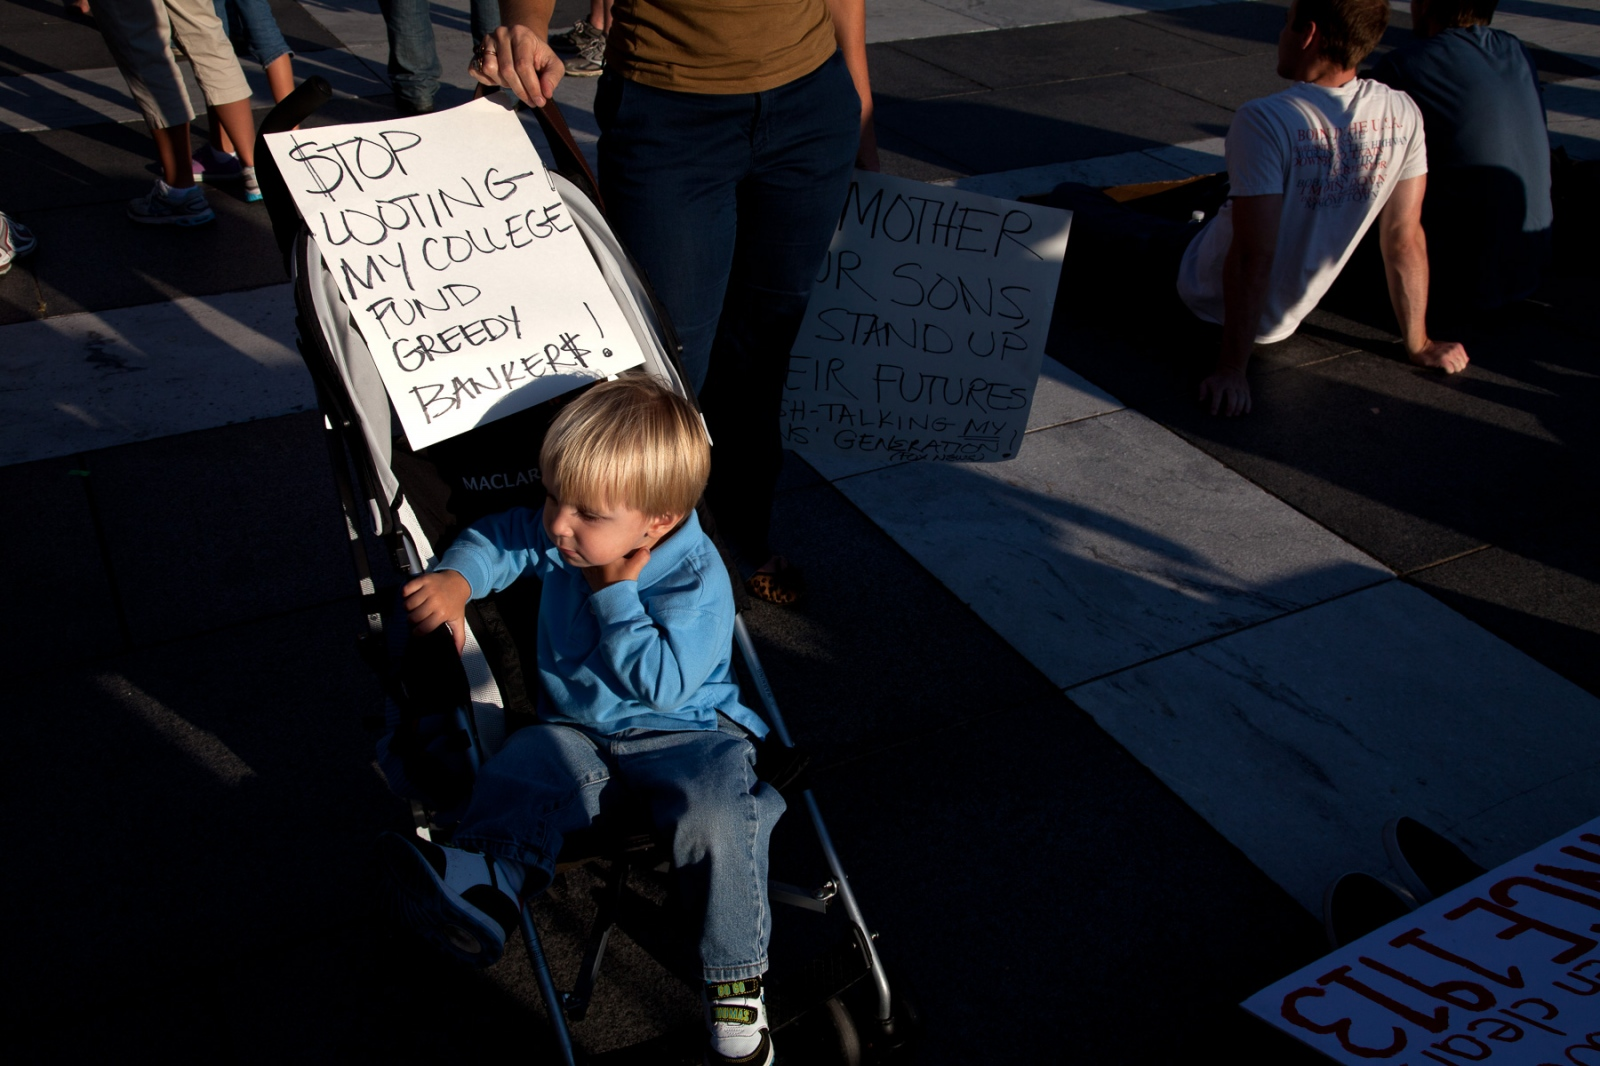 A mother and son bring their message to Freedom Square.